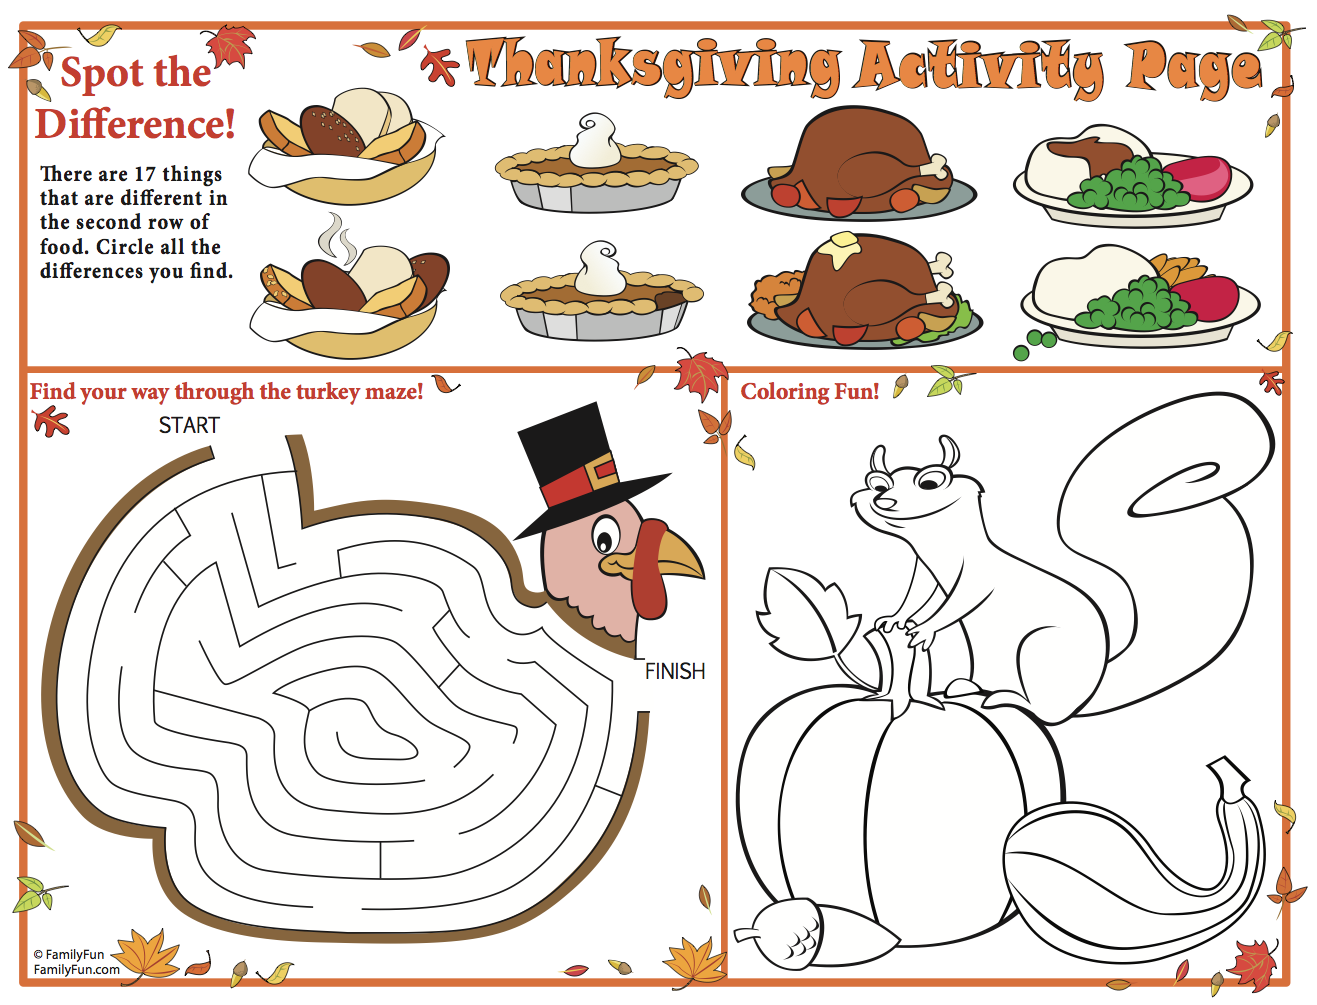 Free Printable Thanksgiving Activity Placemat